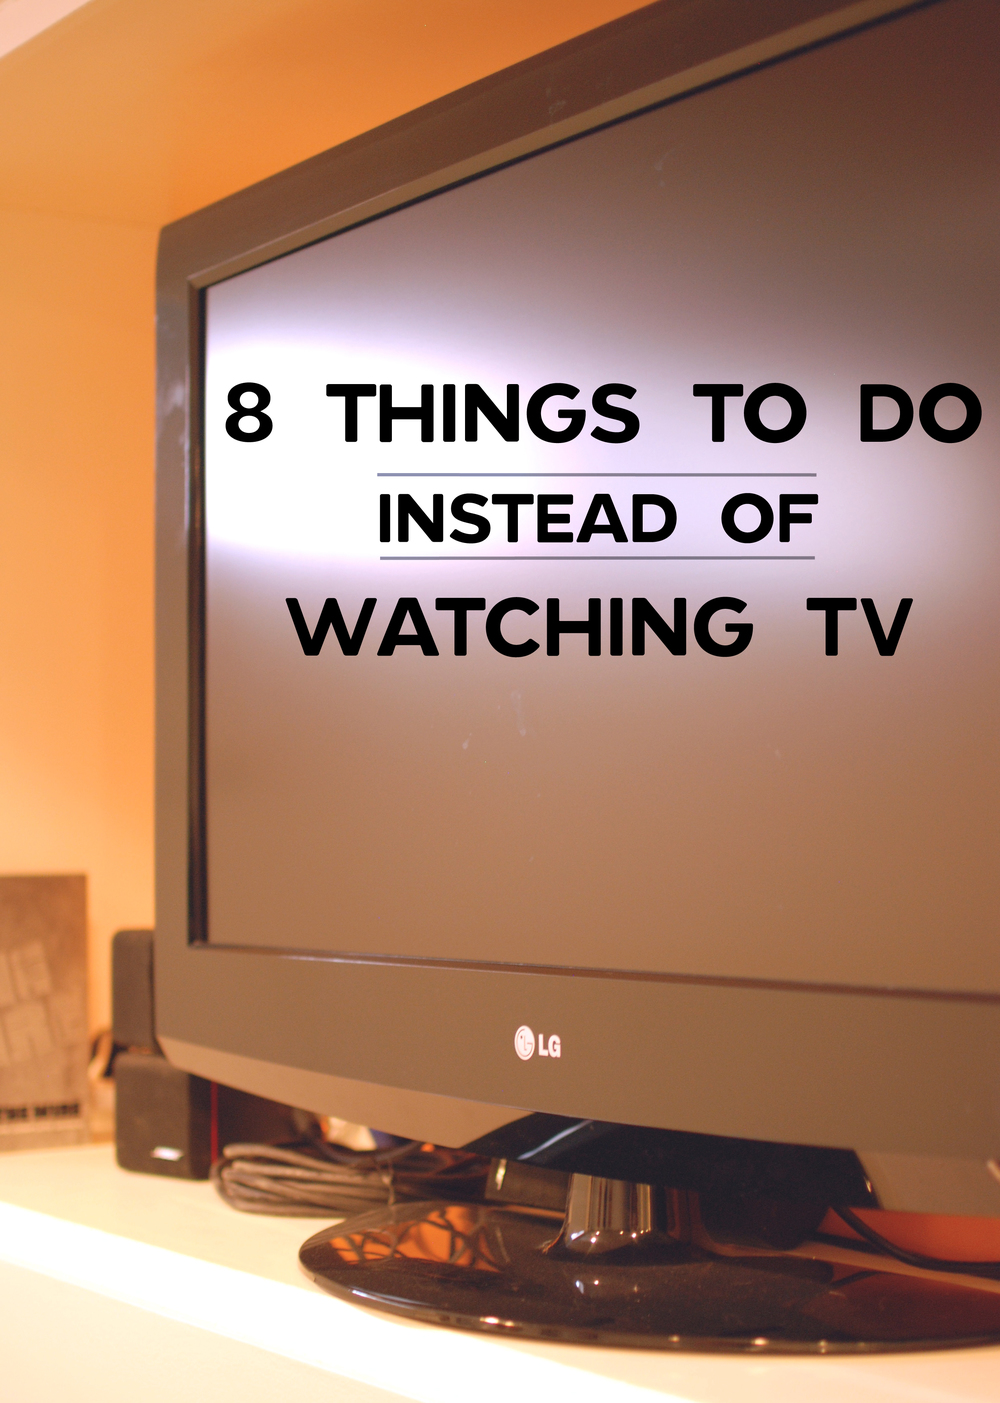 8 Things To Do Instead of Watching TV